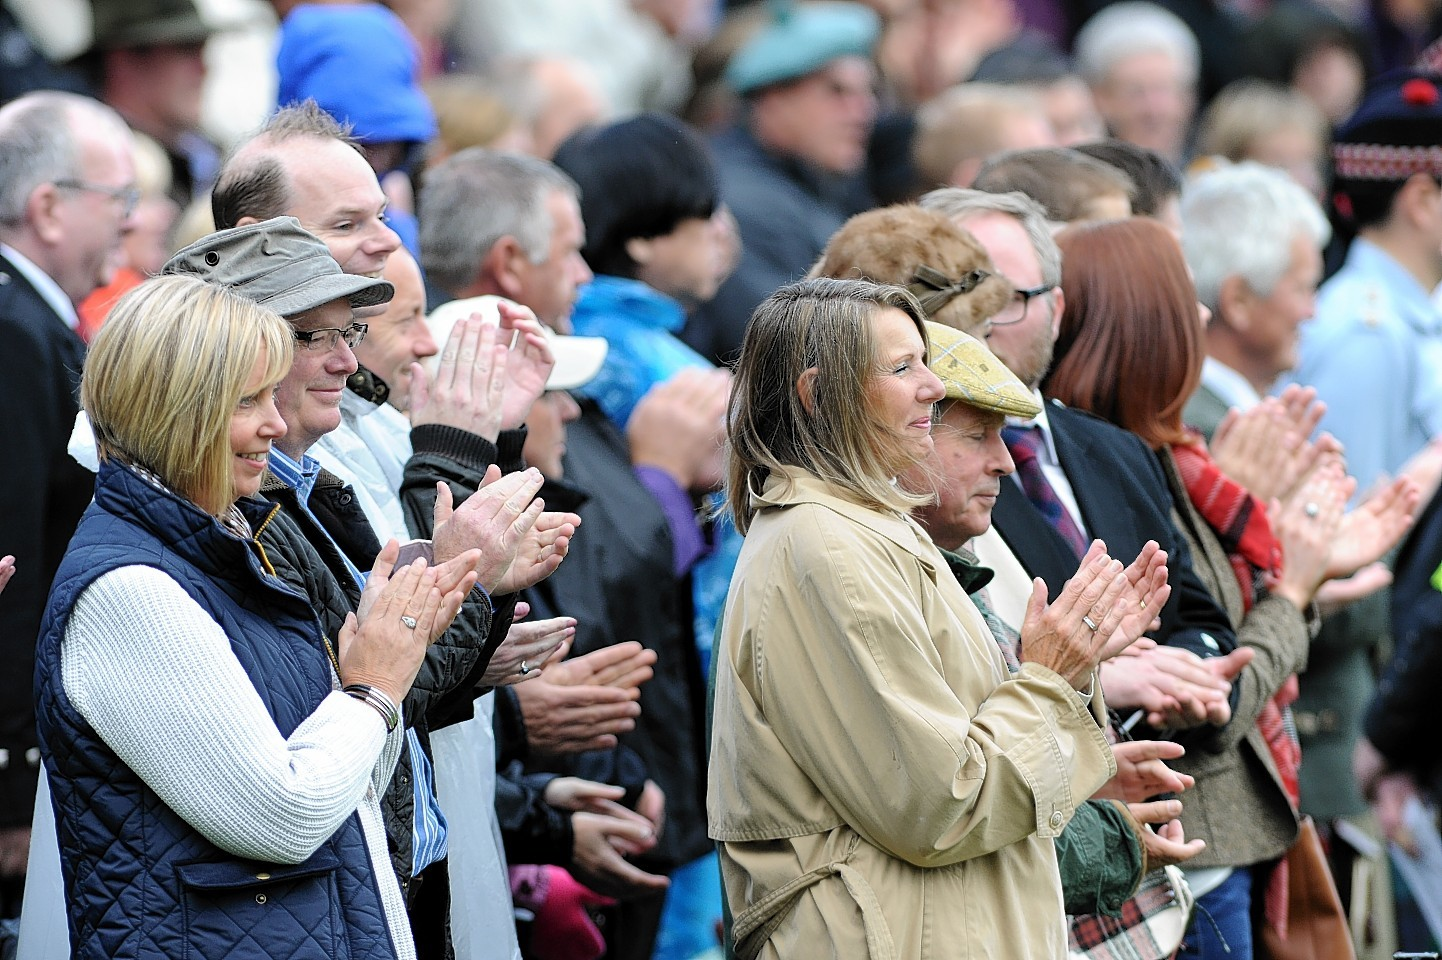 The crowd applauds the Queen's arrival. Credit:  Kami Thomson.